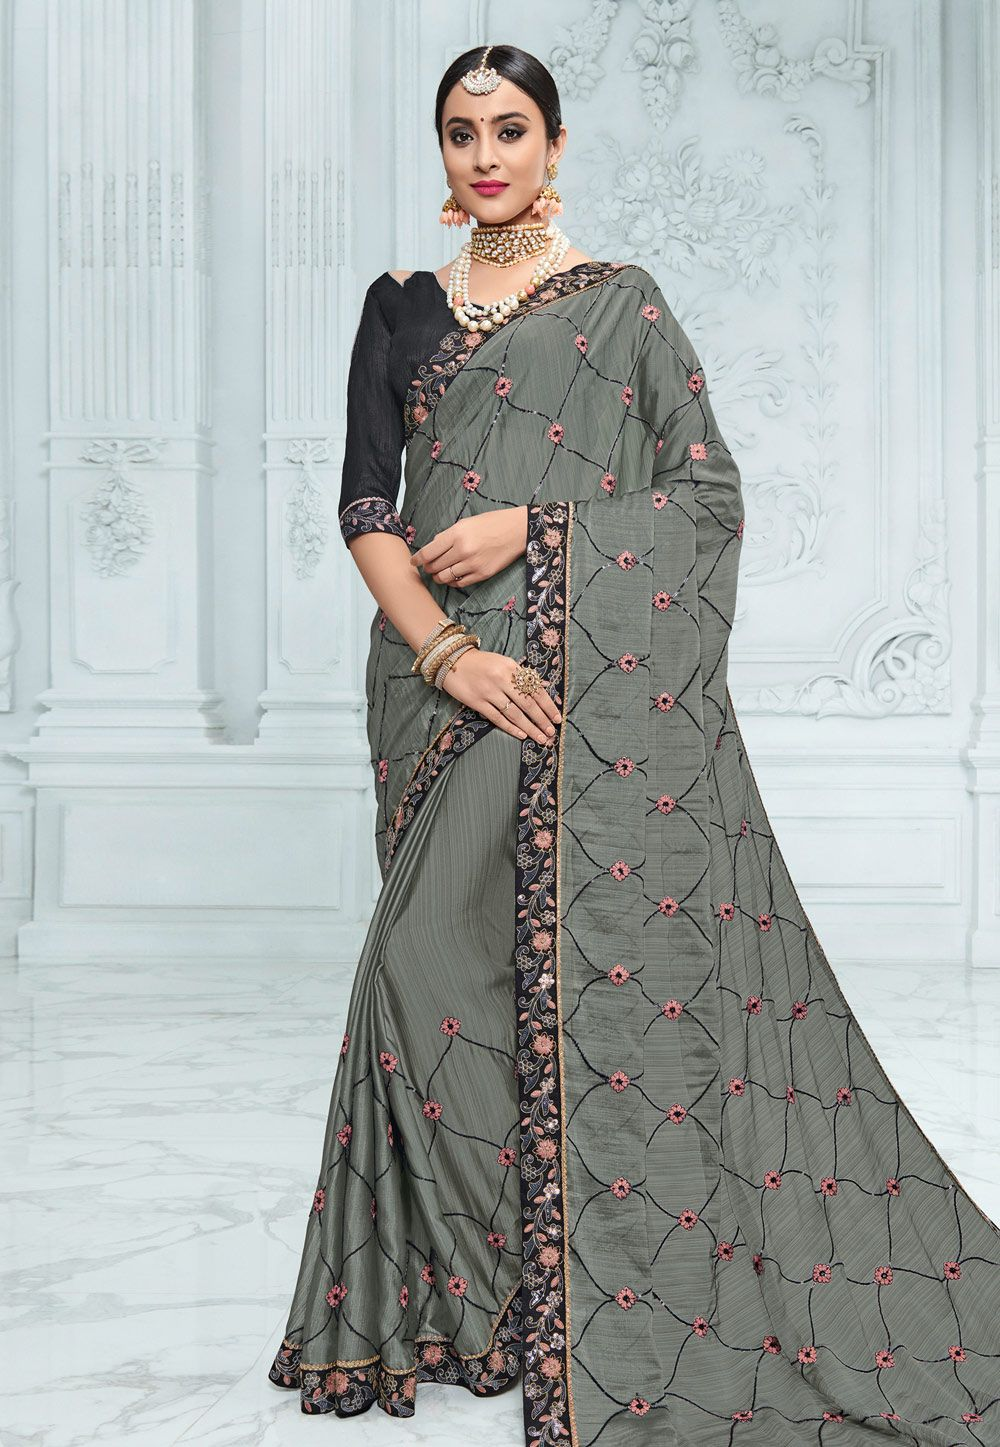 a42b7d915e4a51 Buy Gray Chiffon Festival Wear Saree 155508 with blouse online at lowest  price from vast collection of sarees at Indianclothstore.com.